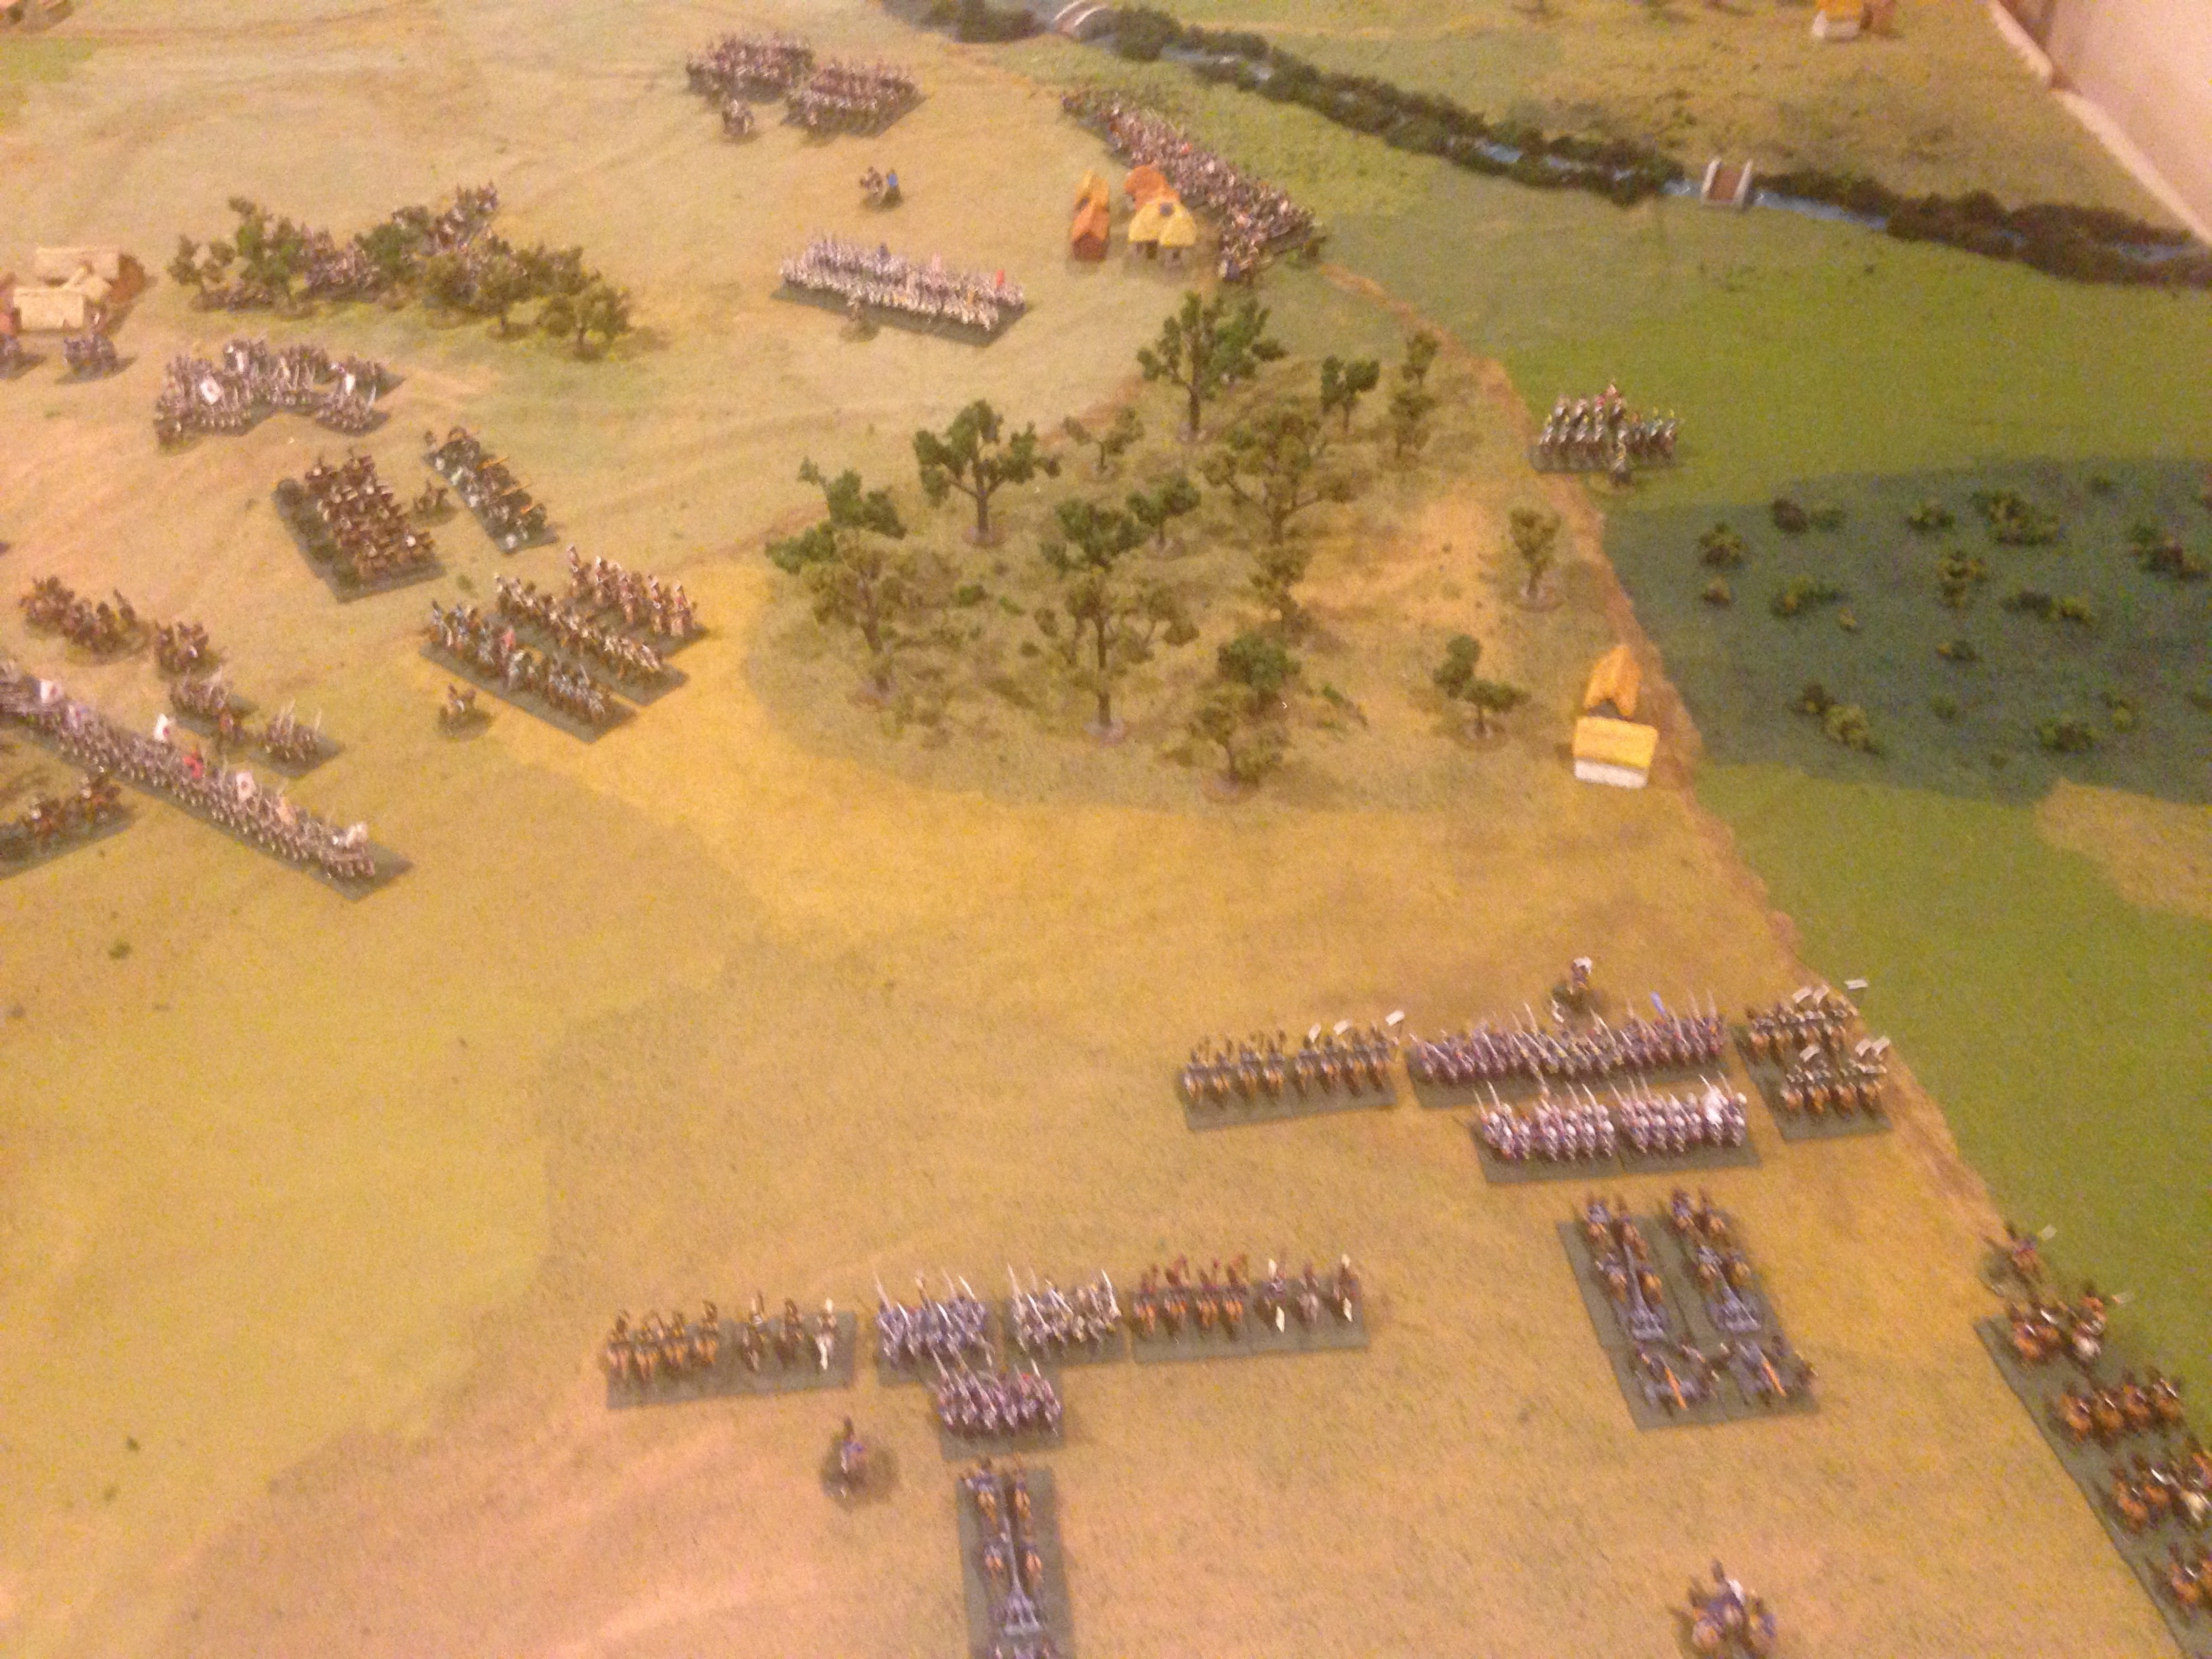 Prussian corps composing the Allied right flank.